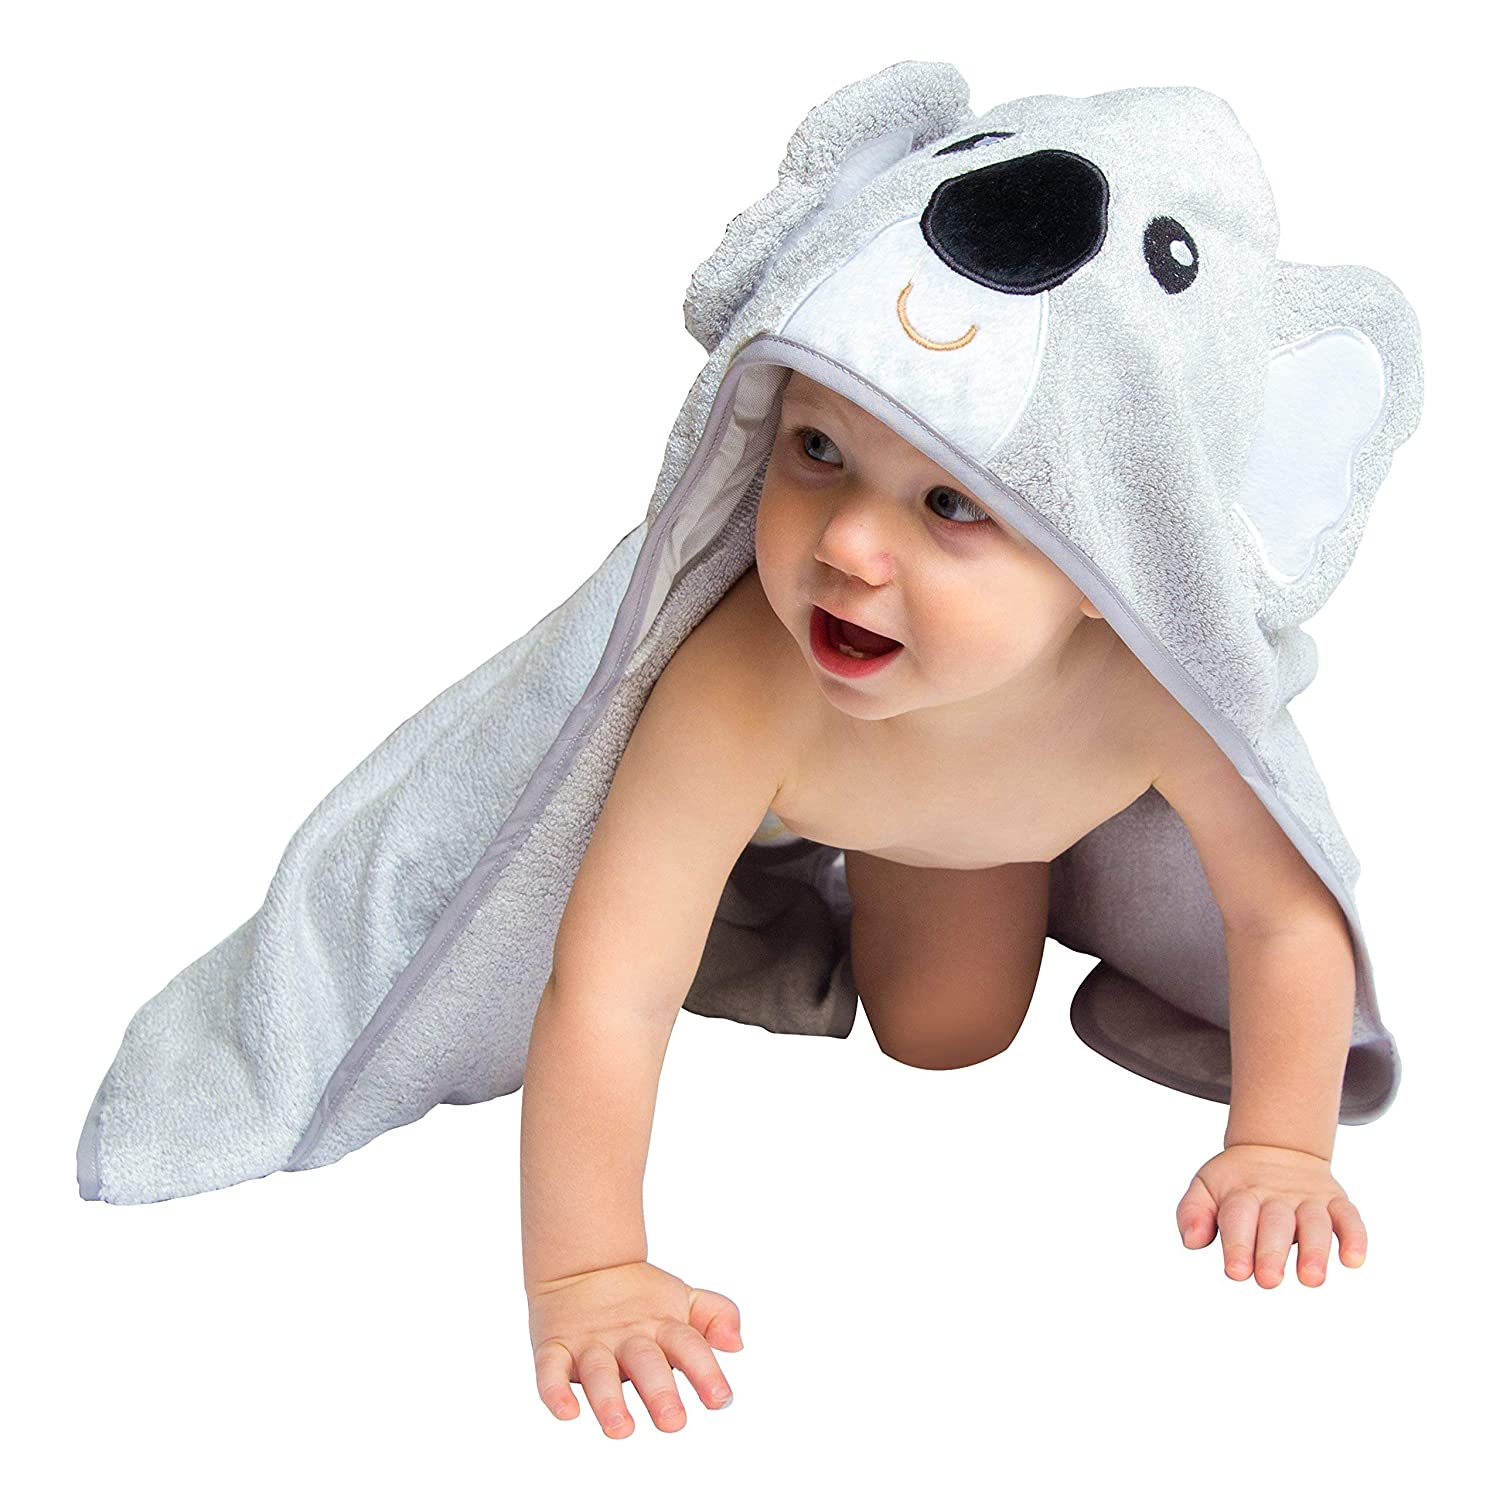 Hooded Baby Bath Towel - Cute, Large, Plush, Ultra Absorbent, Thick, Soft Natural Bamboo Koala Bear Wrap - Robe Plus Washcloth Set - Best for Bath, Beach, Pool, Shower, Infant, Kids, Boys, Girls tini baby HTKO08.2017